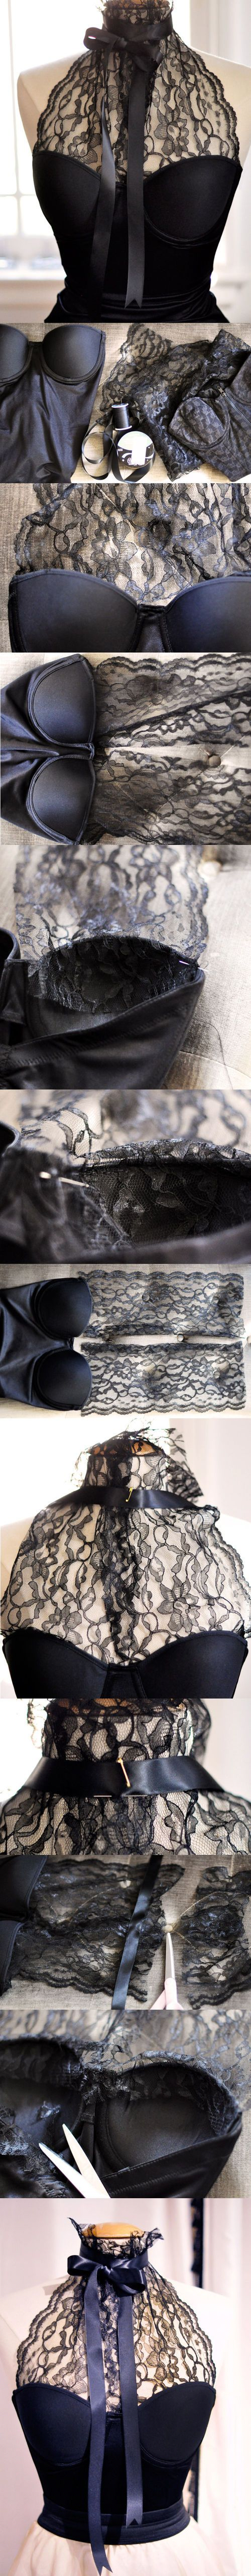 Interesting Craft Ideas With Lace - Fashion Diva Design this is a great way to make something more modest